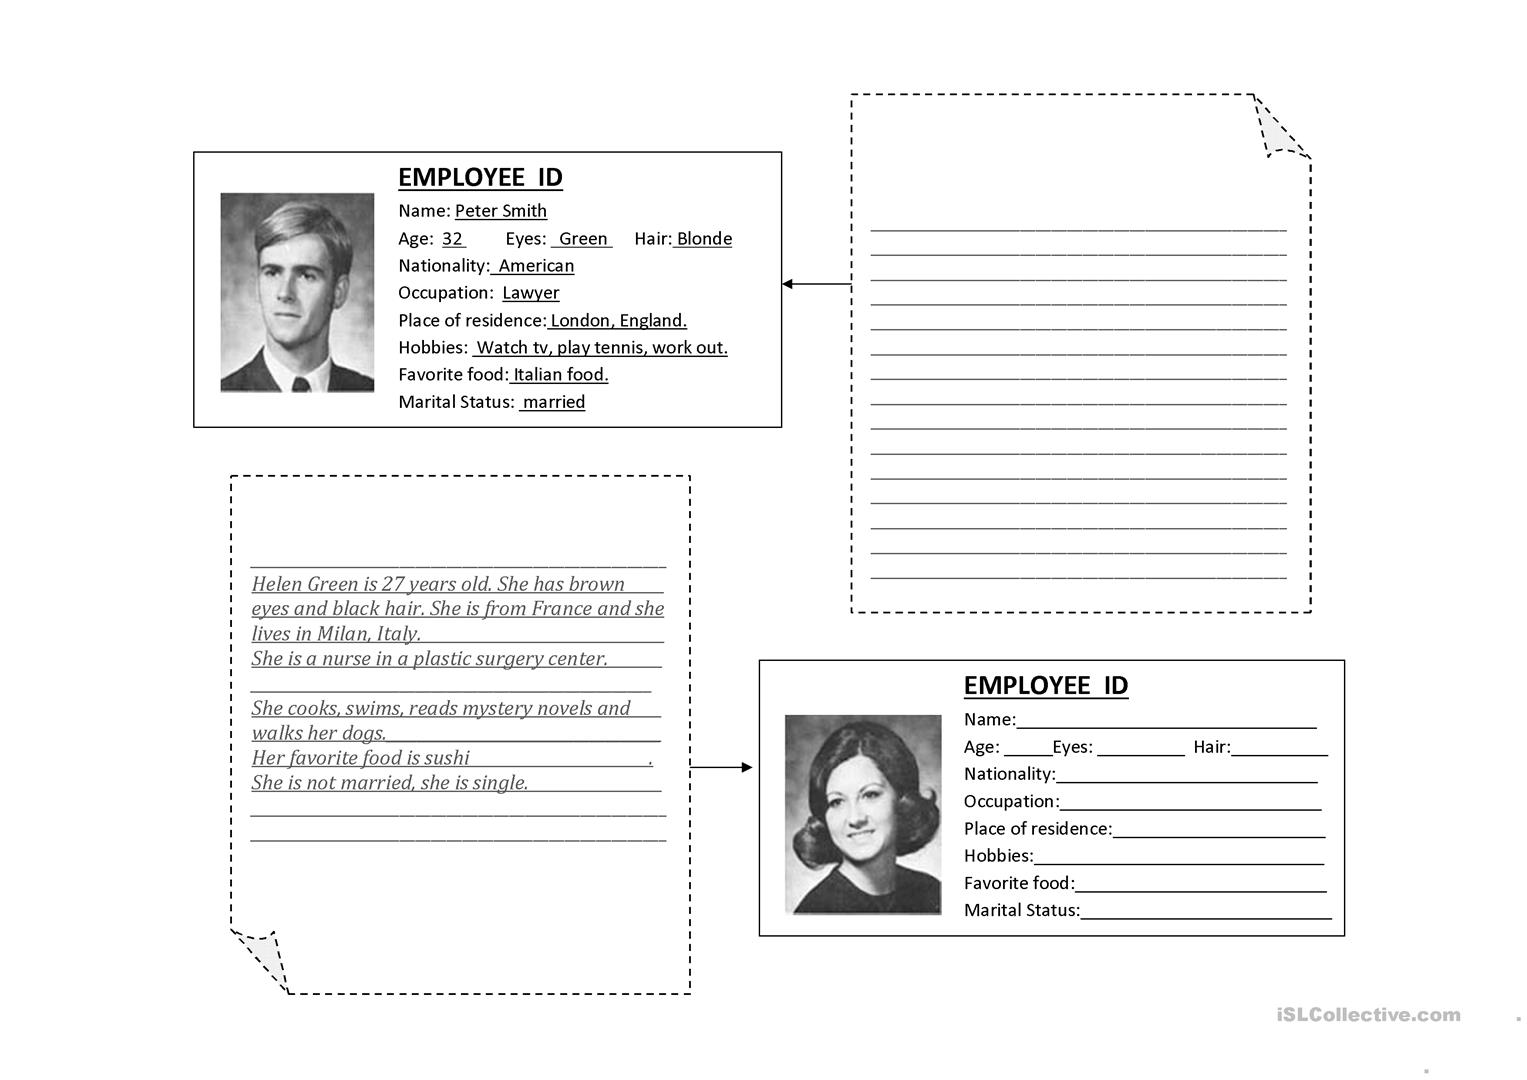 Third Person Singular Personal Information Worksheet